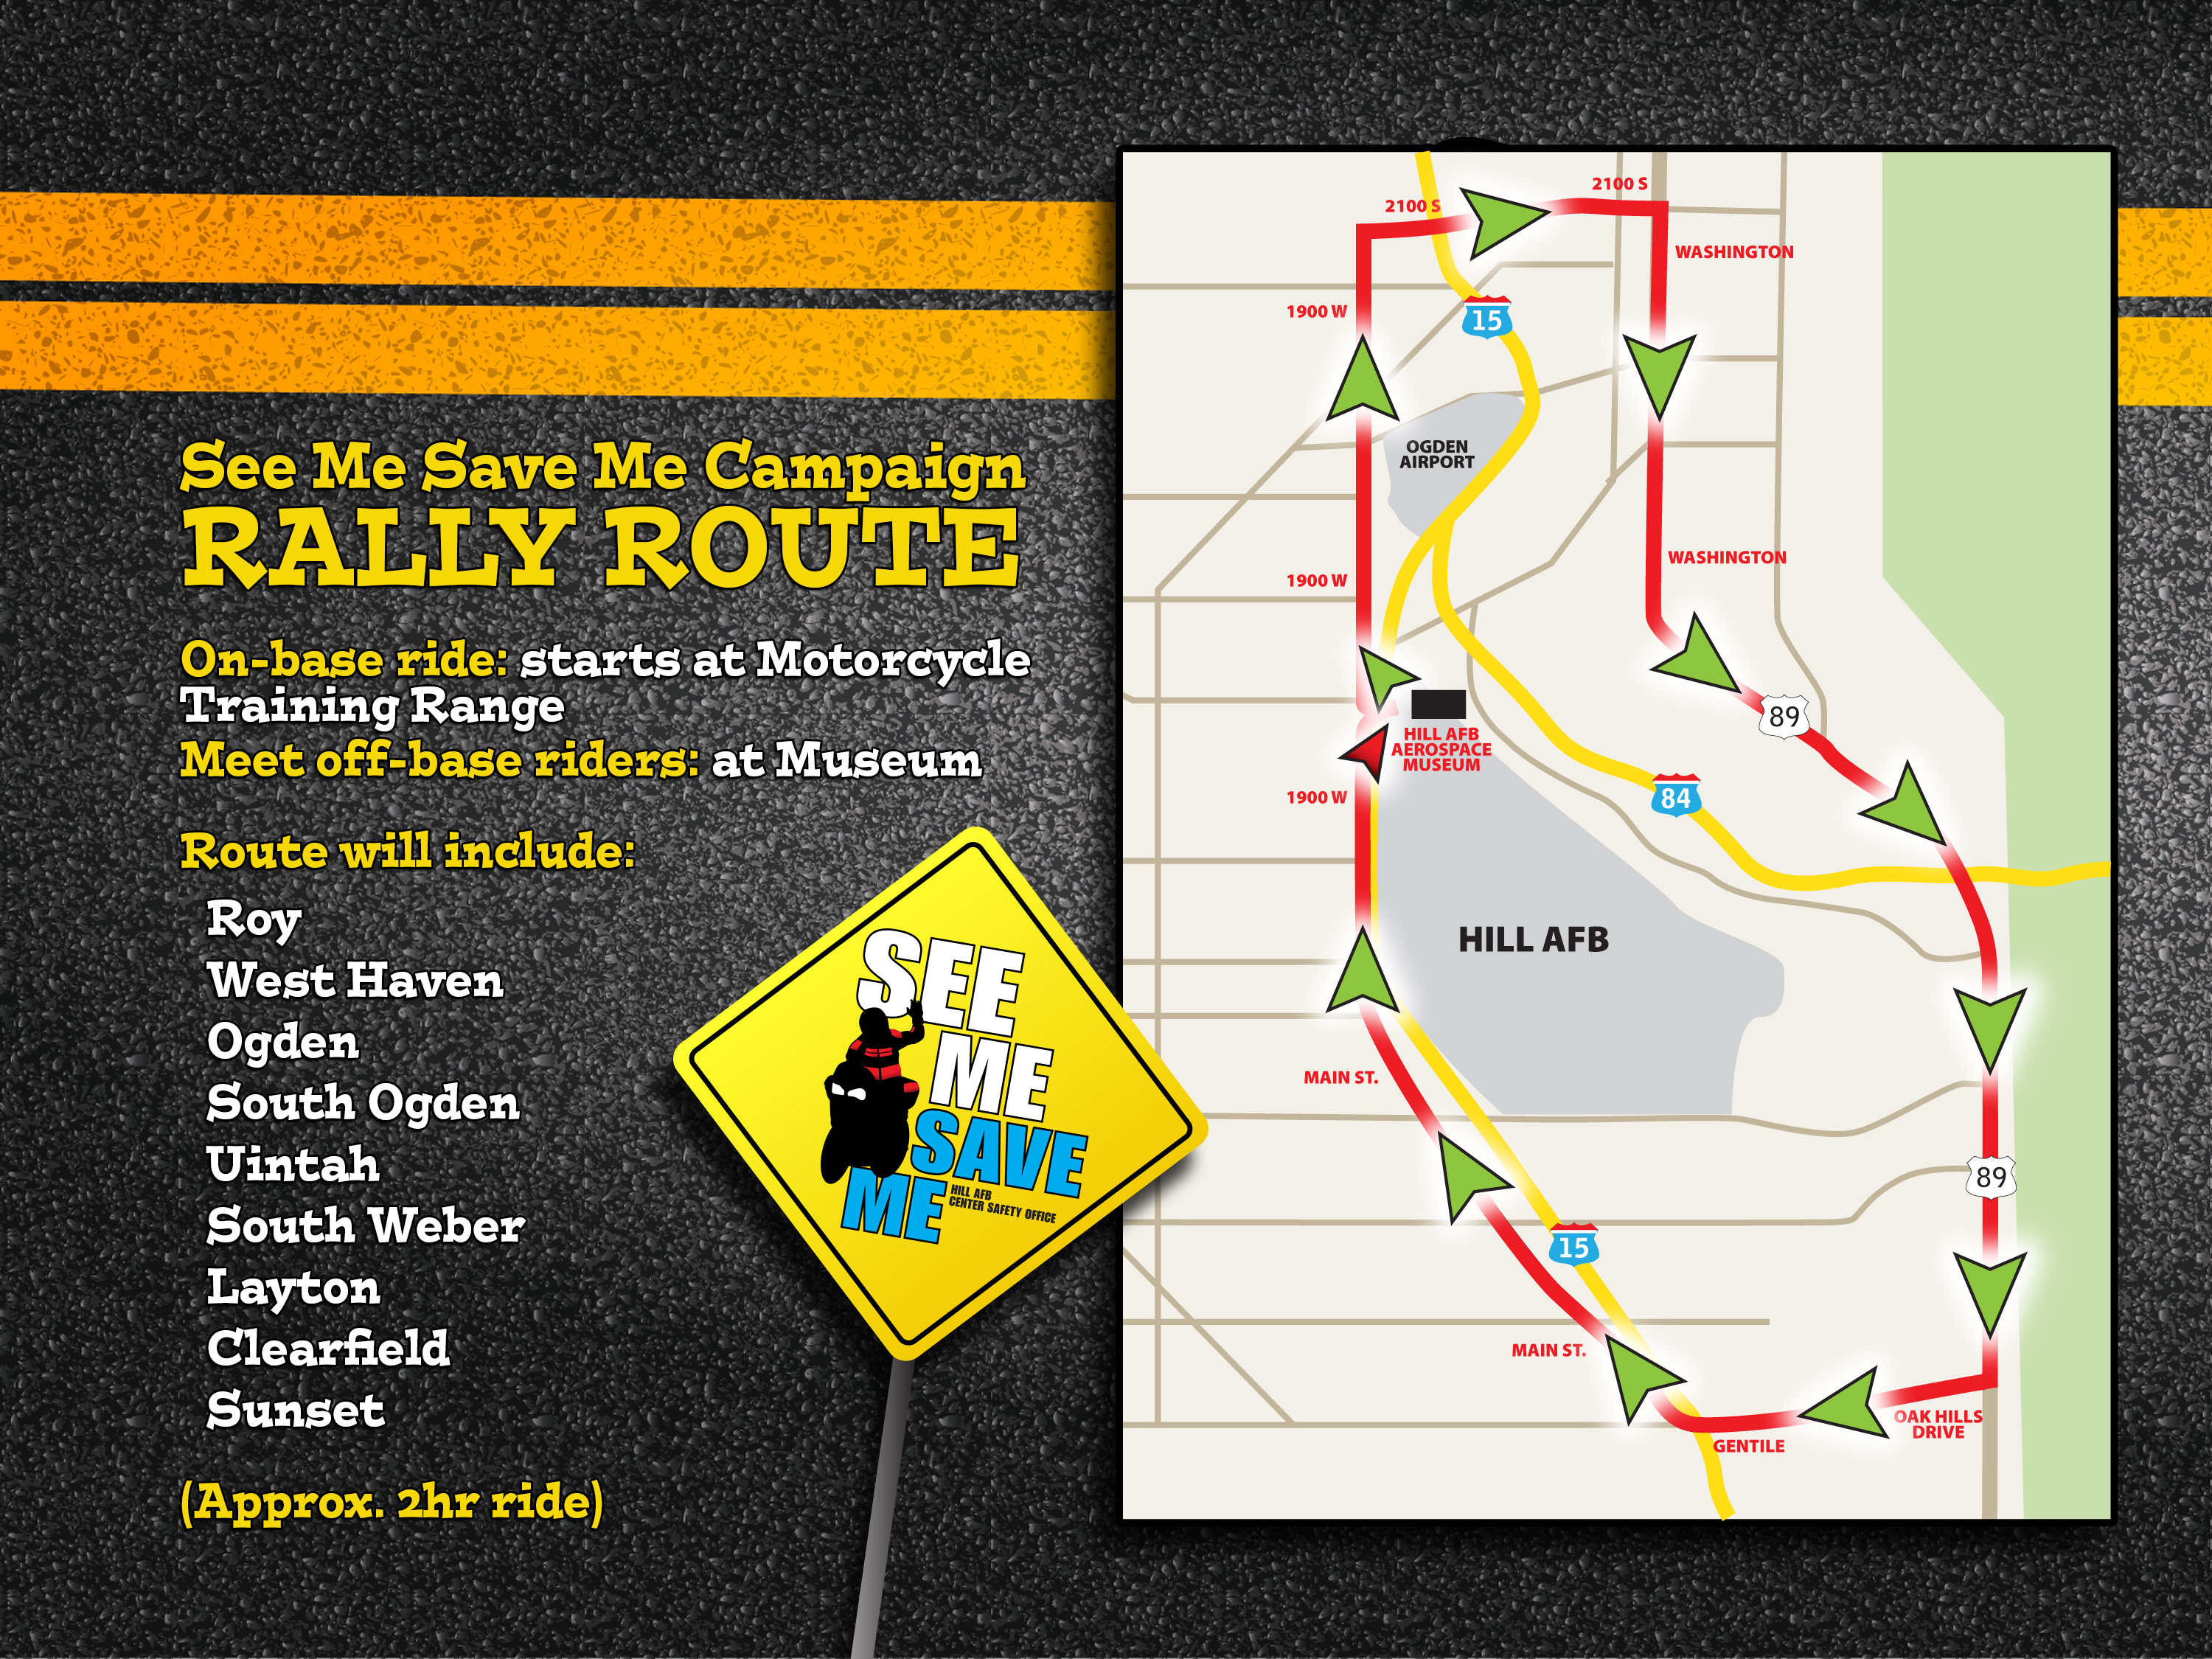 Map of route of See Me Save Me Ride